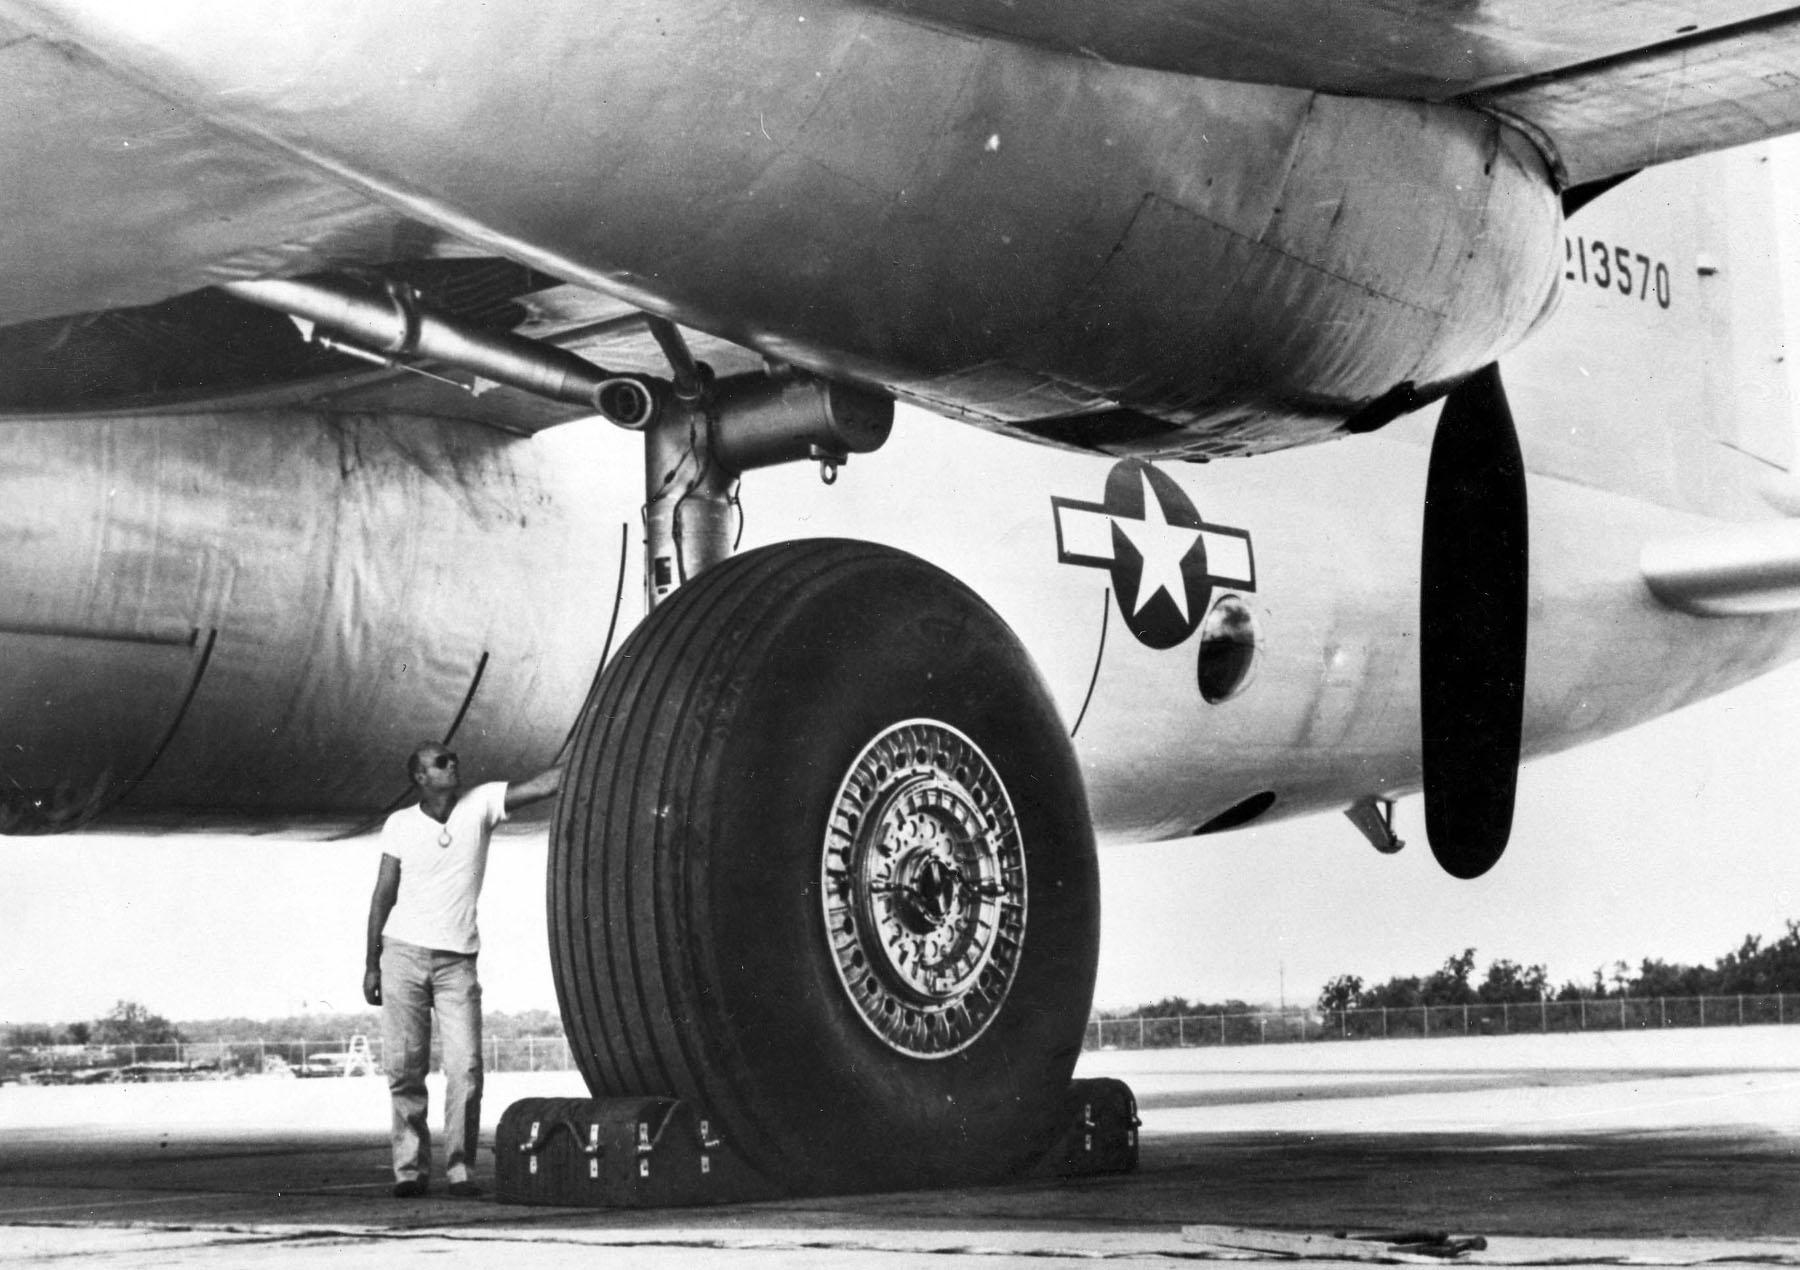 #AirplaneWednesday – What aircraft type?